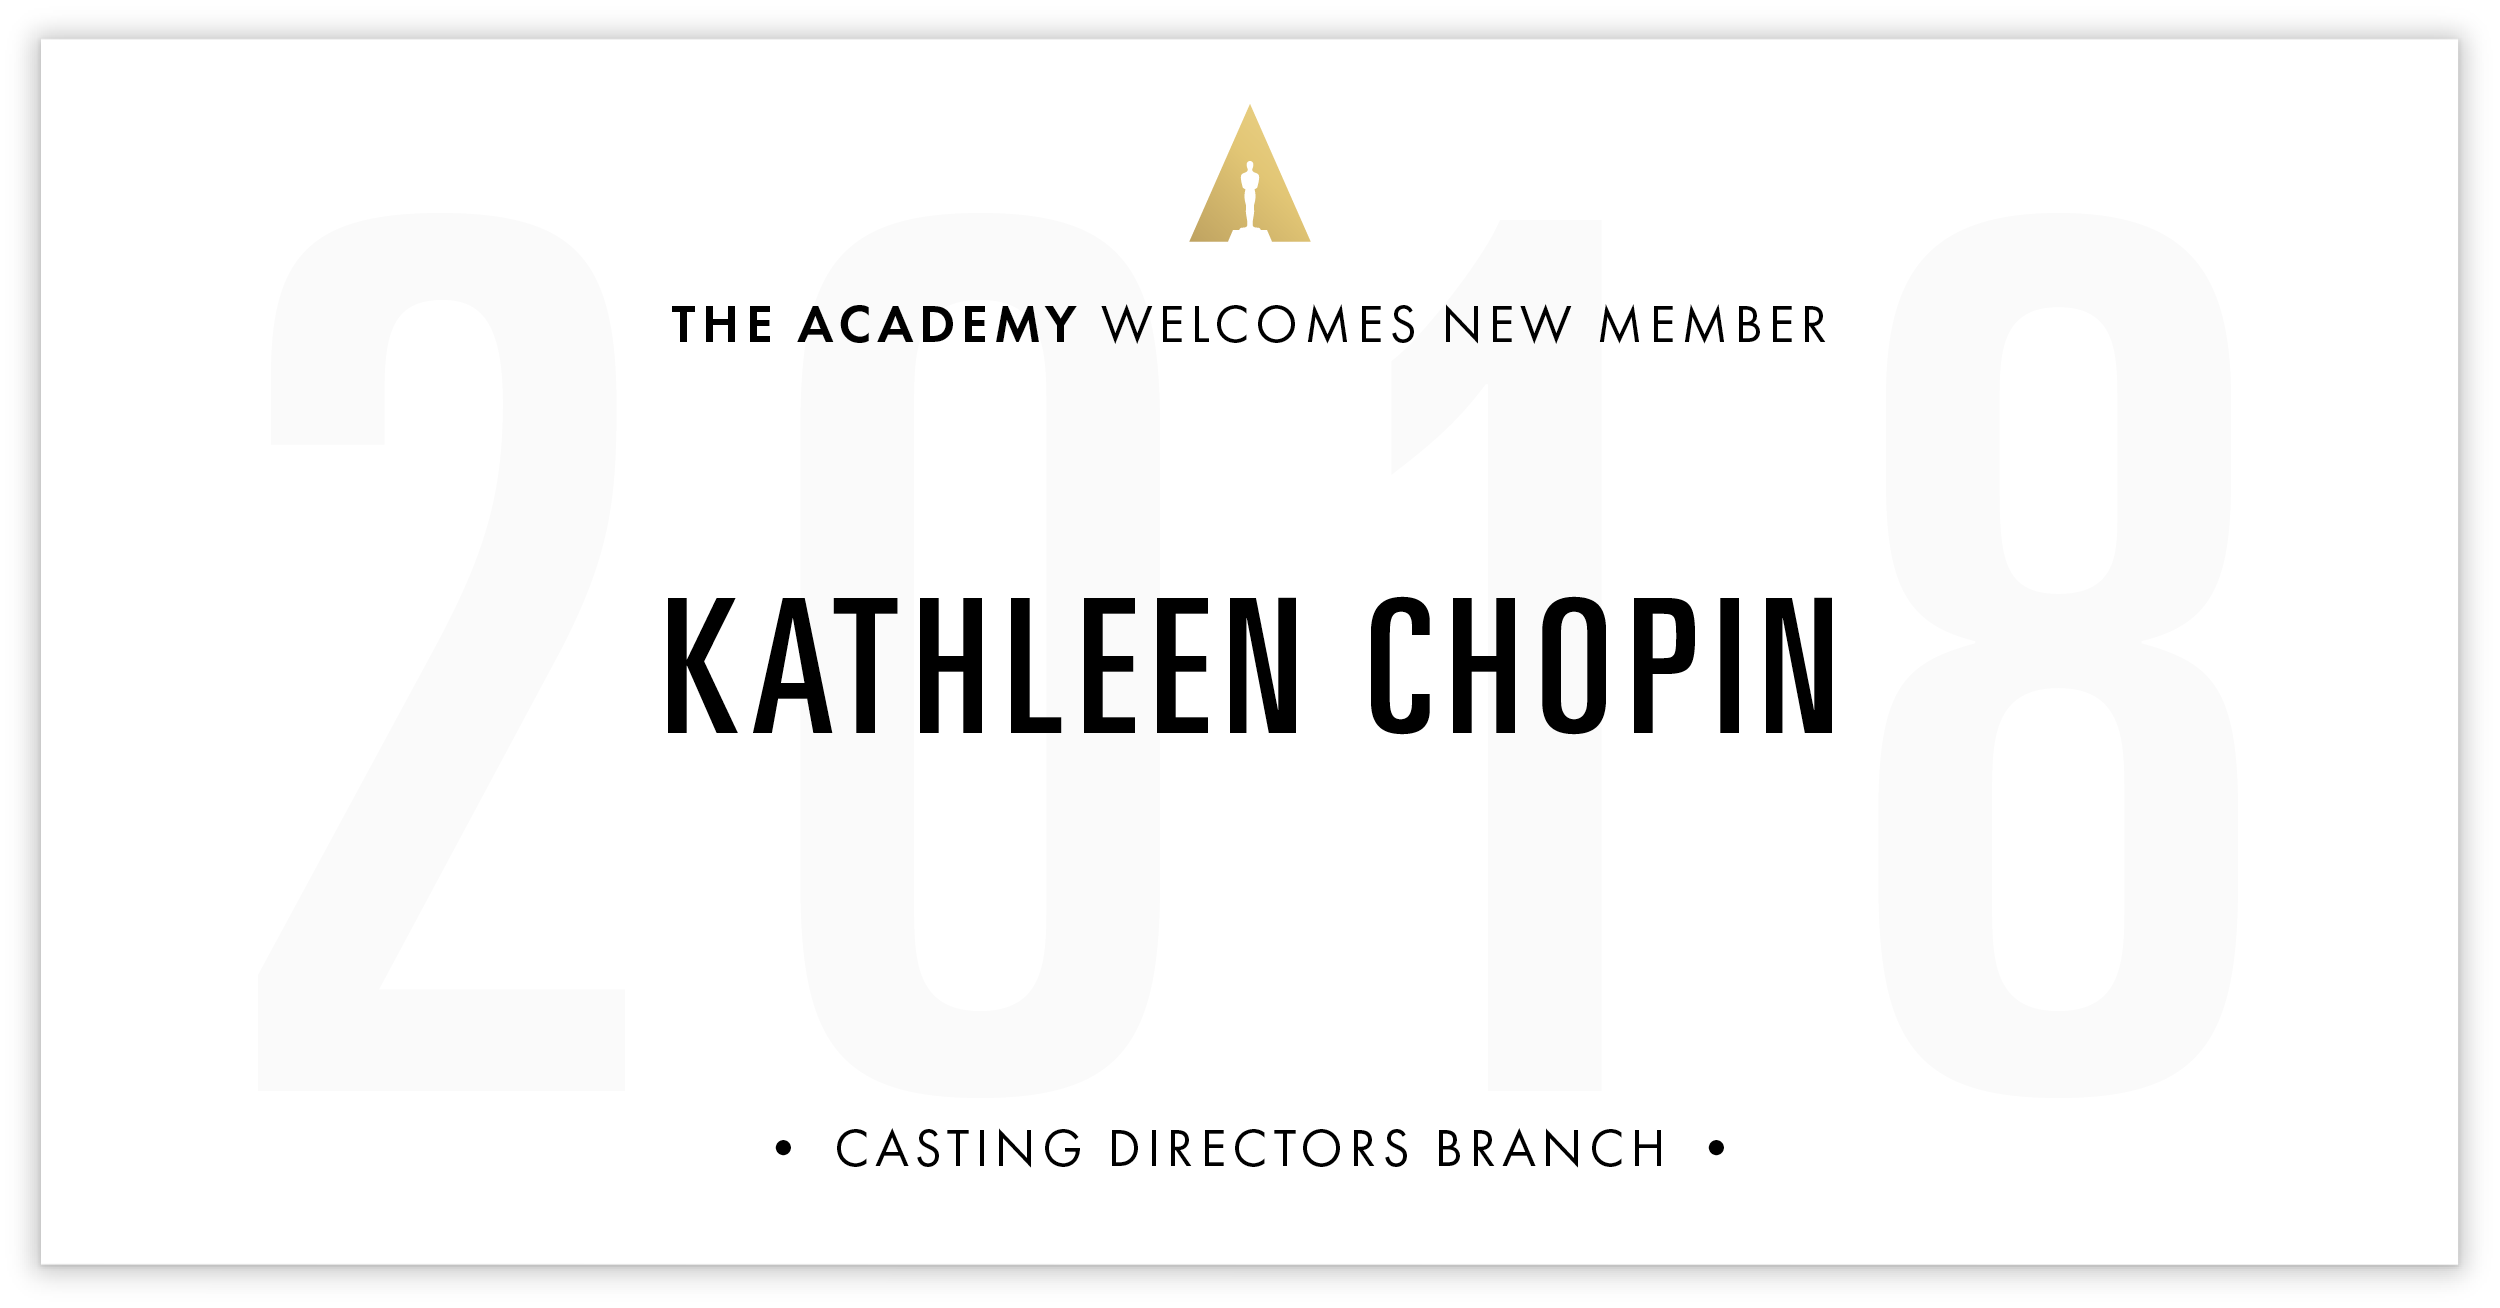 Kathleen Chopin is invited!